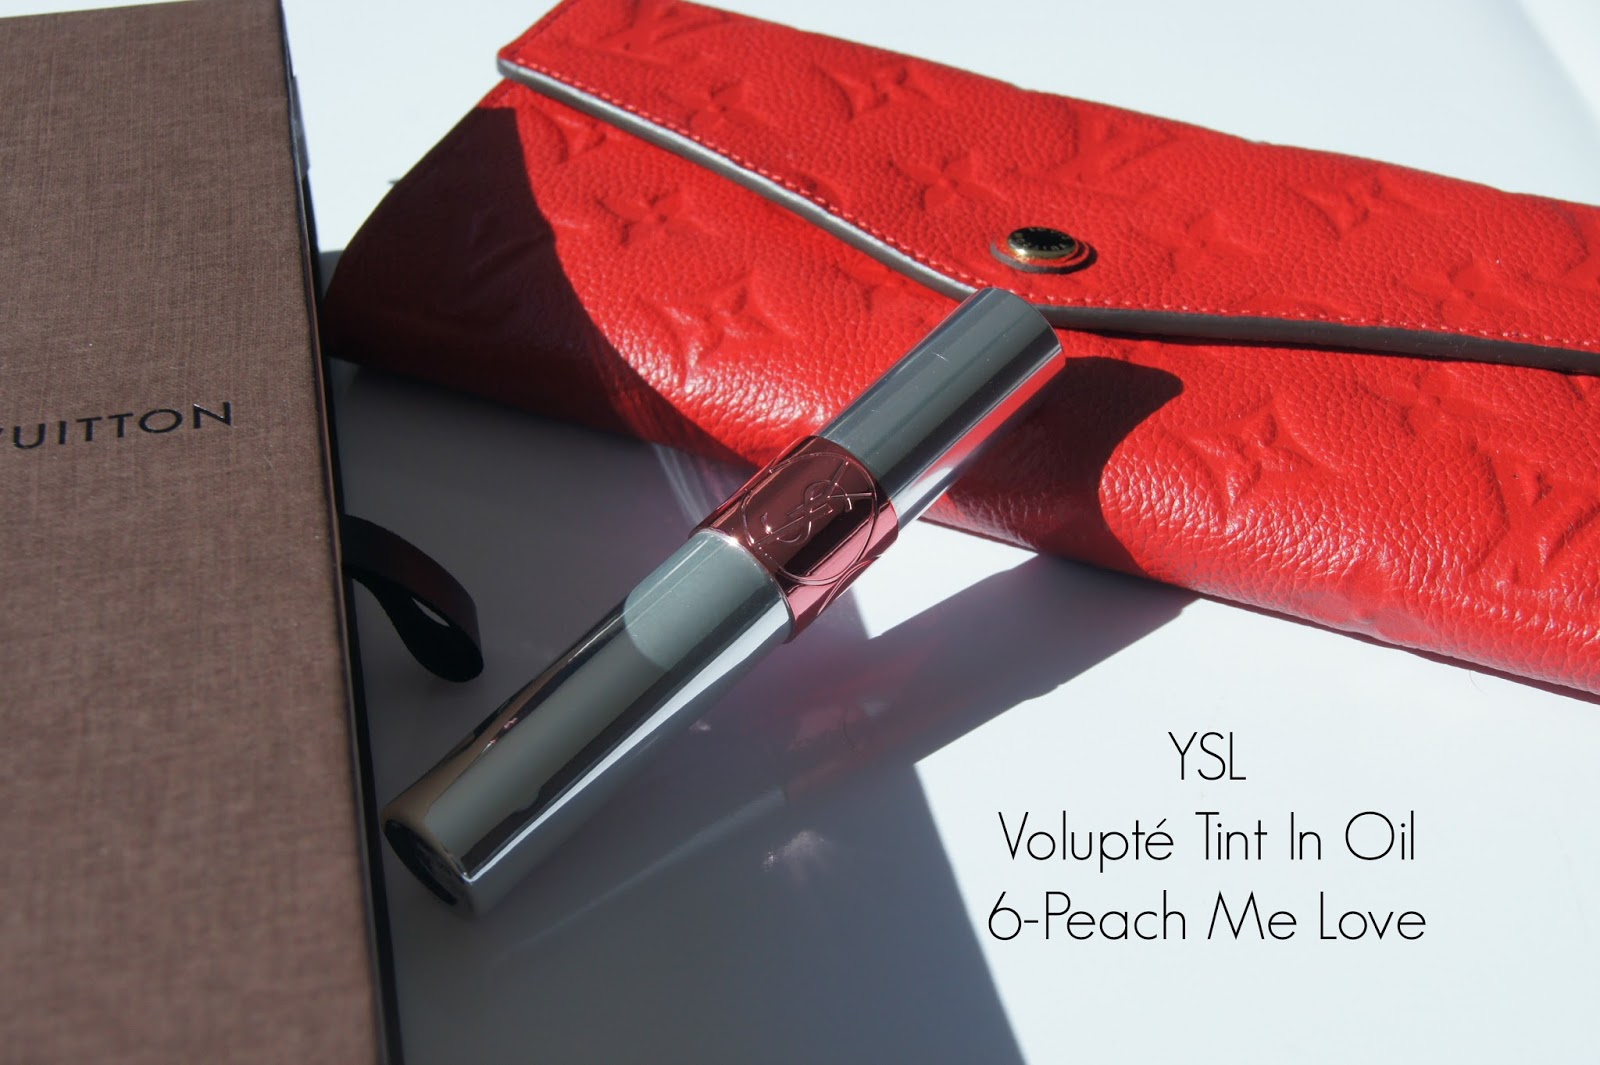 YSL Volupté Tint In Oil-6 Peach me love